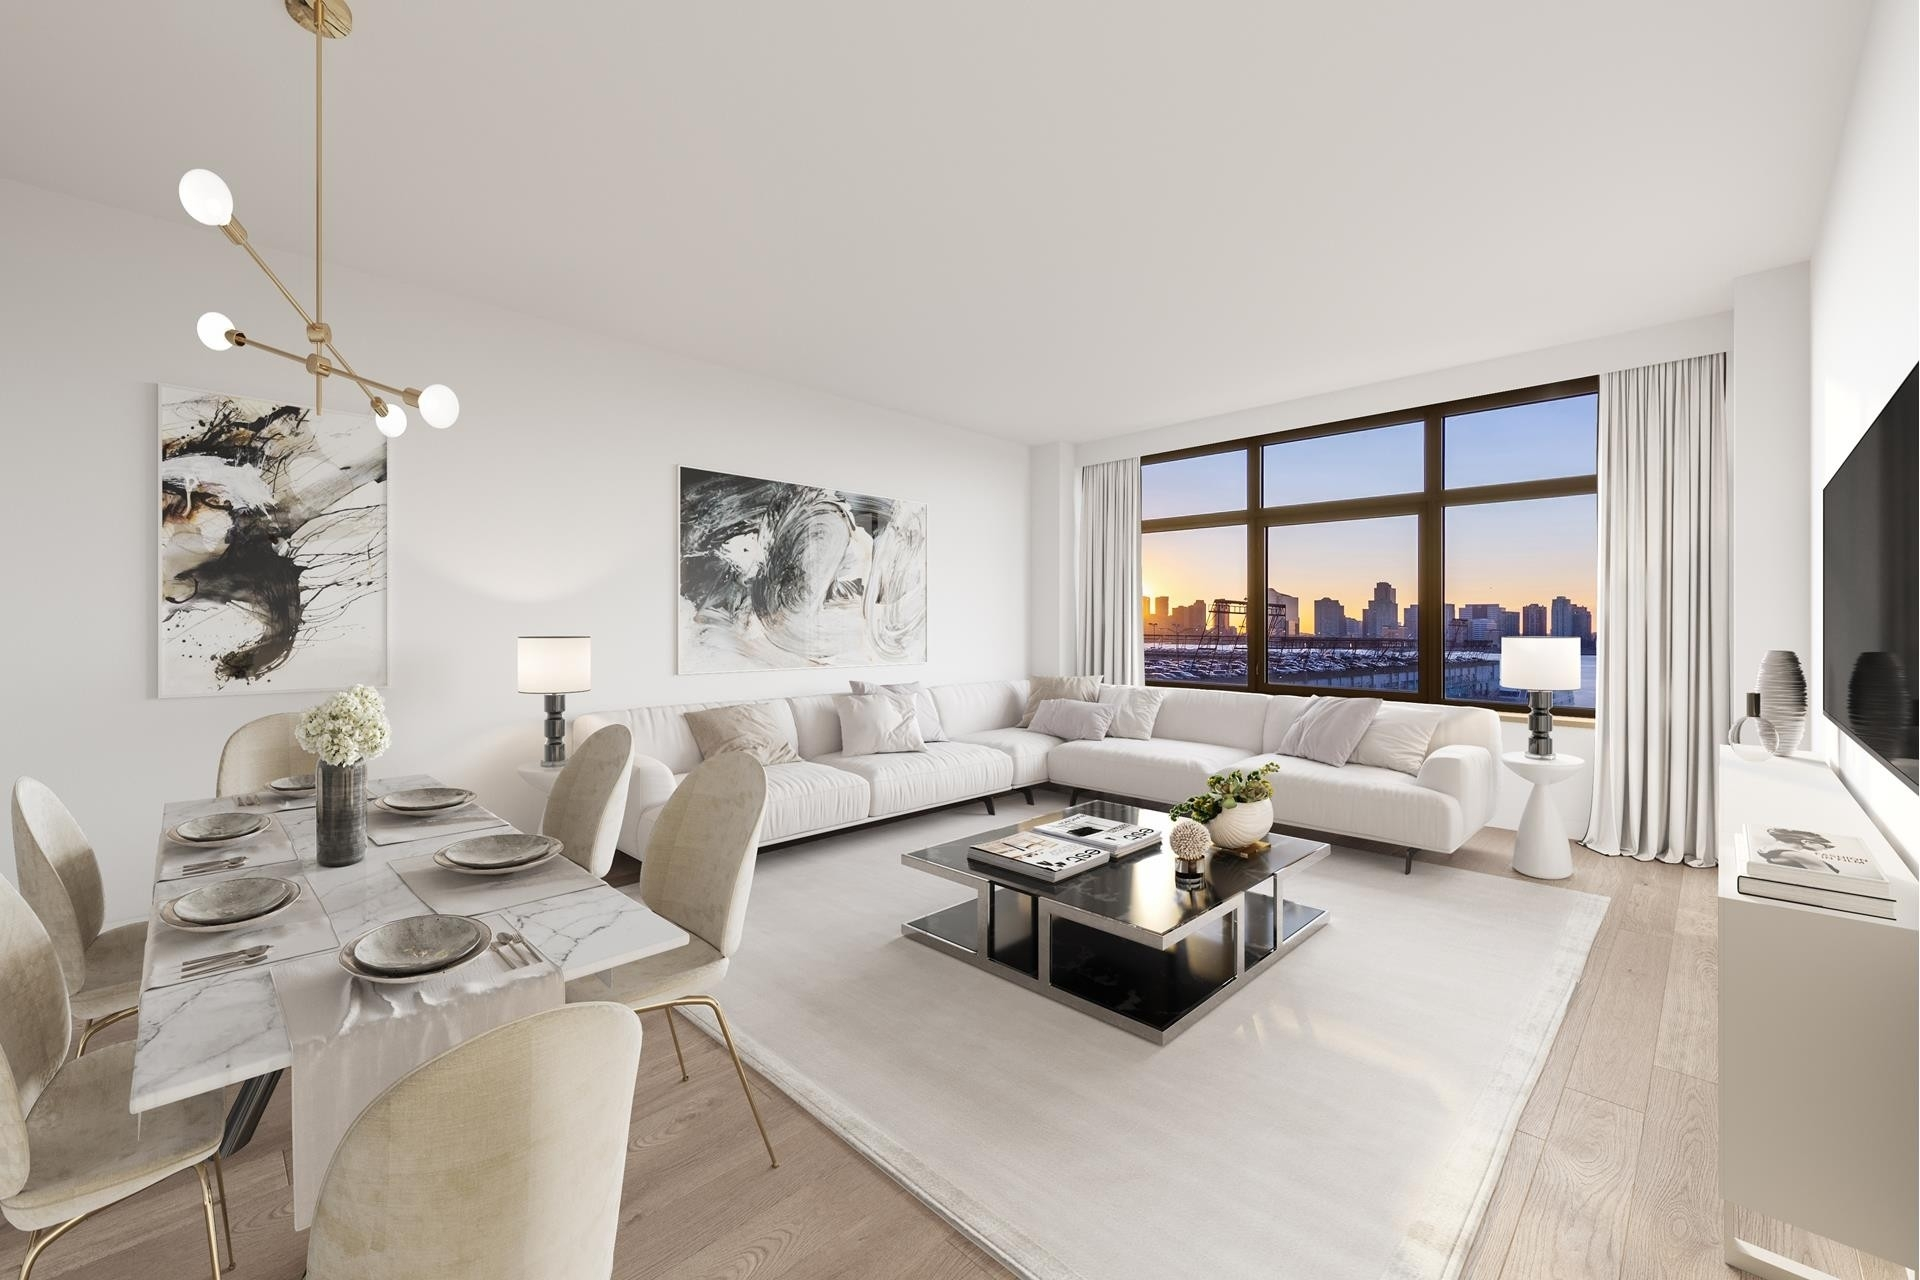 Condominium at 1 Morton Square, 6EW West Village, New York, NY 10014